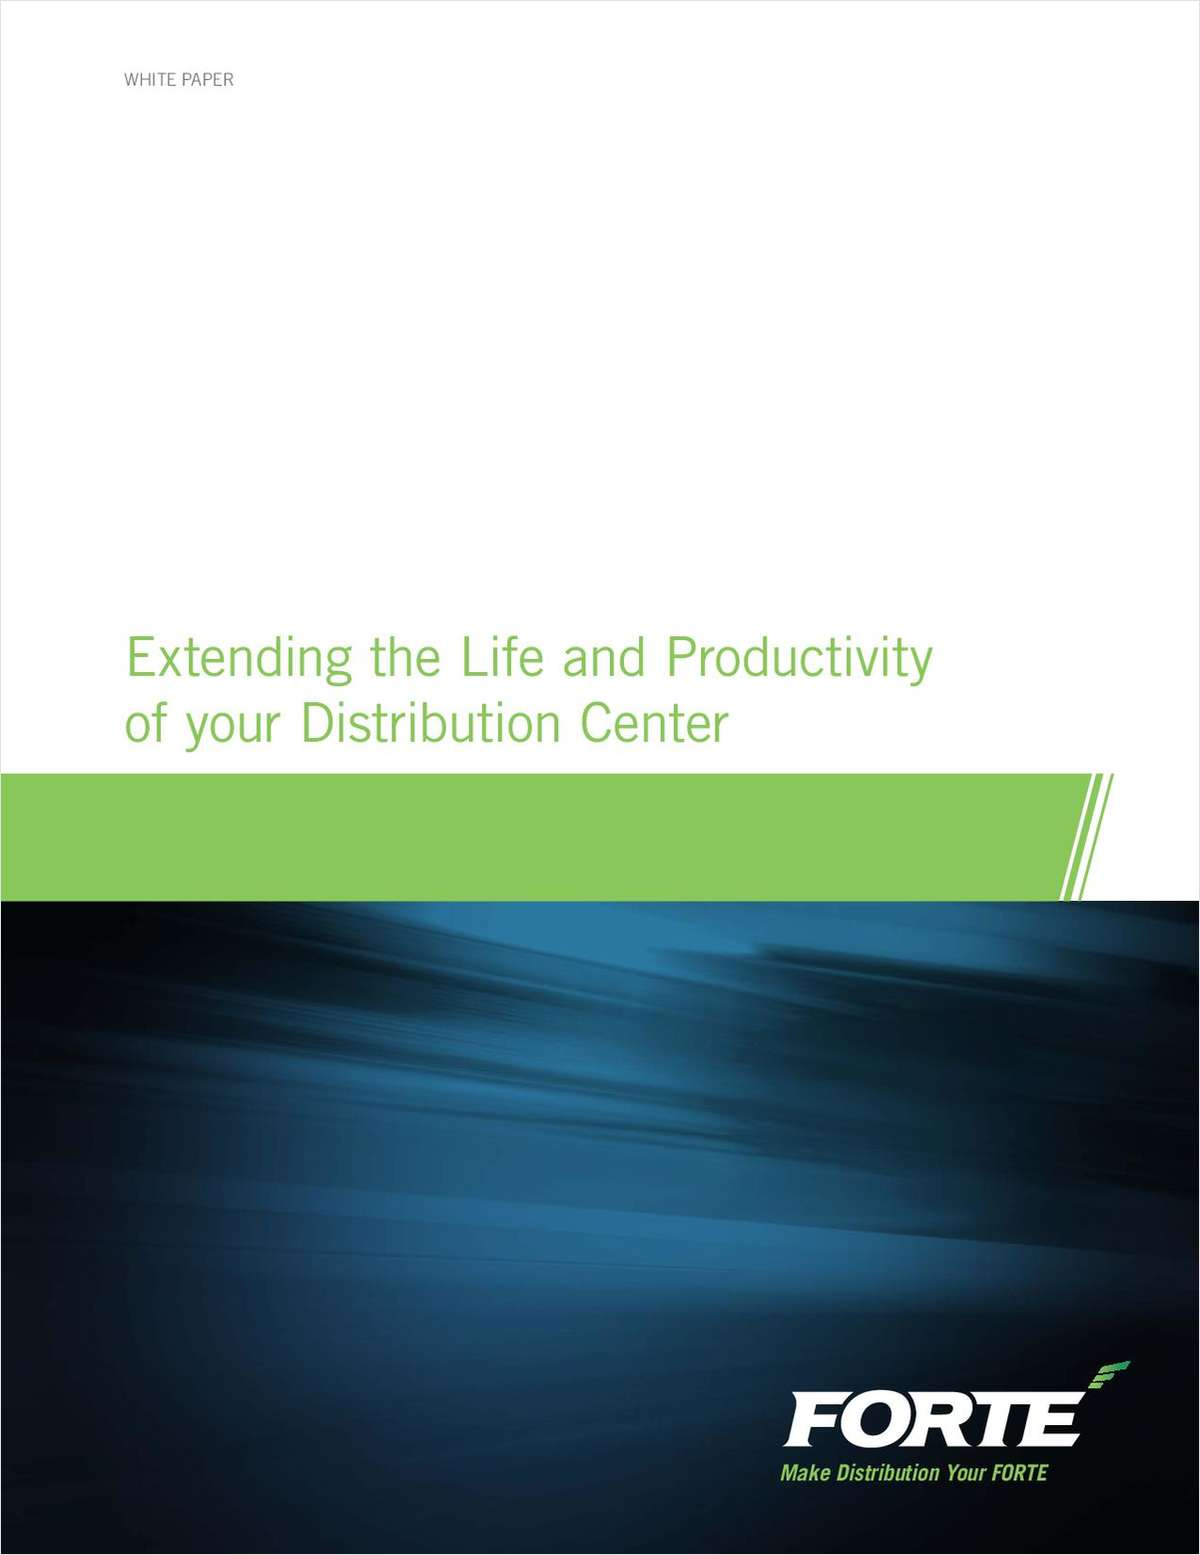 Extending the Life and Productivity of your Distribution Center